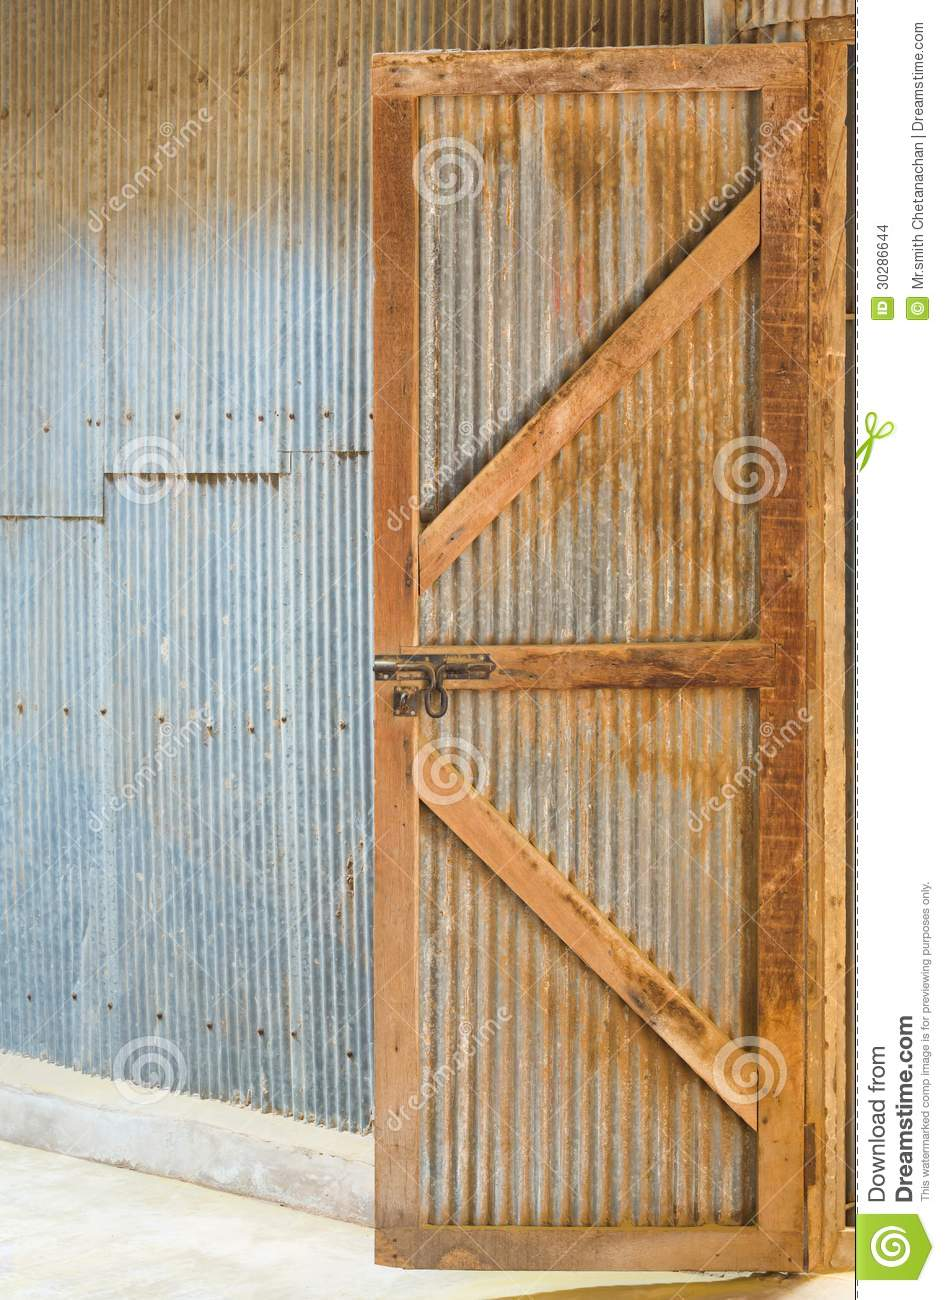 Corrugated Zinc Sheet Wall And Door Stock Images Image